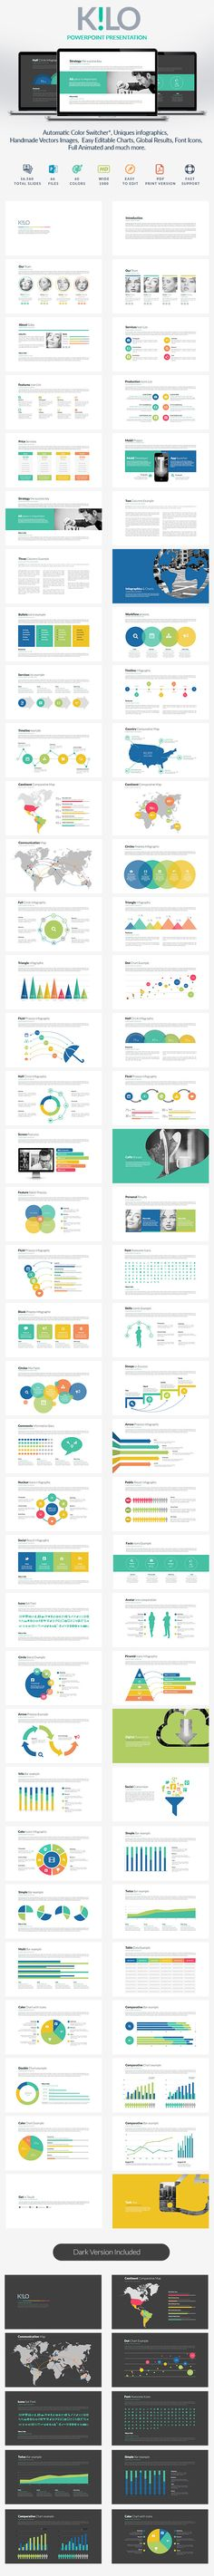 Kilo - Powerpoint Template. Download here: http://graphicriver.net/item/kilo-powerpoint-template/14930286?ref=ksioks